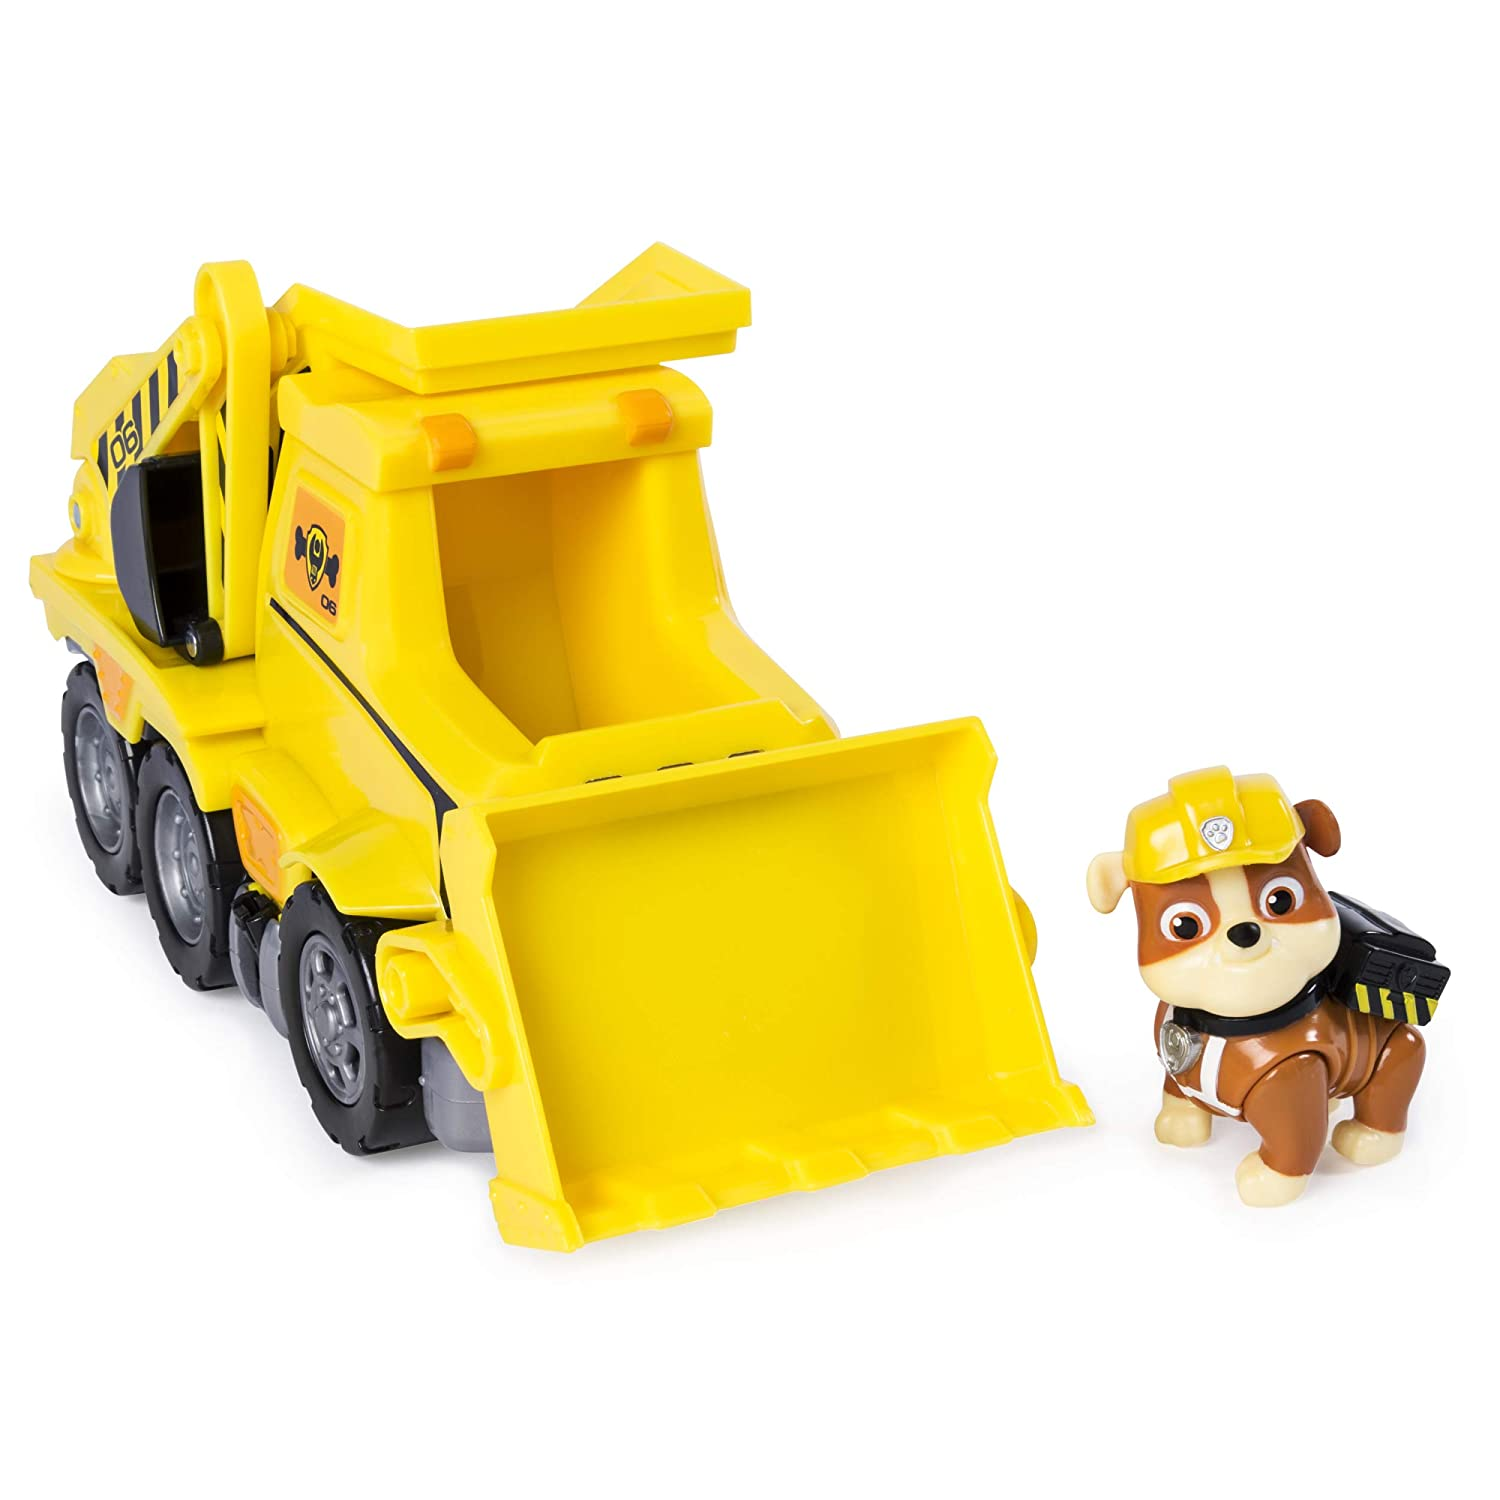 c2fe81c2d6a07 Paw Patrol 6046150 Play Figure   Vehicle  Amazon.co.uk  Toys   Games